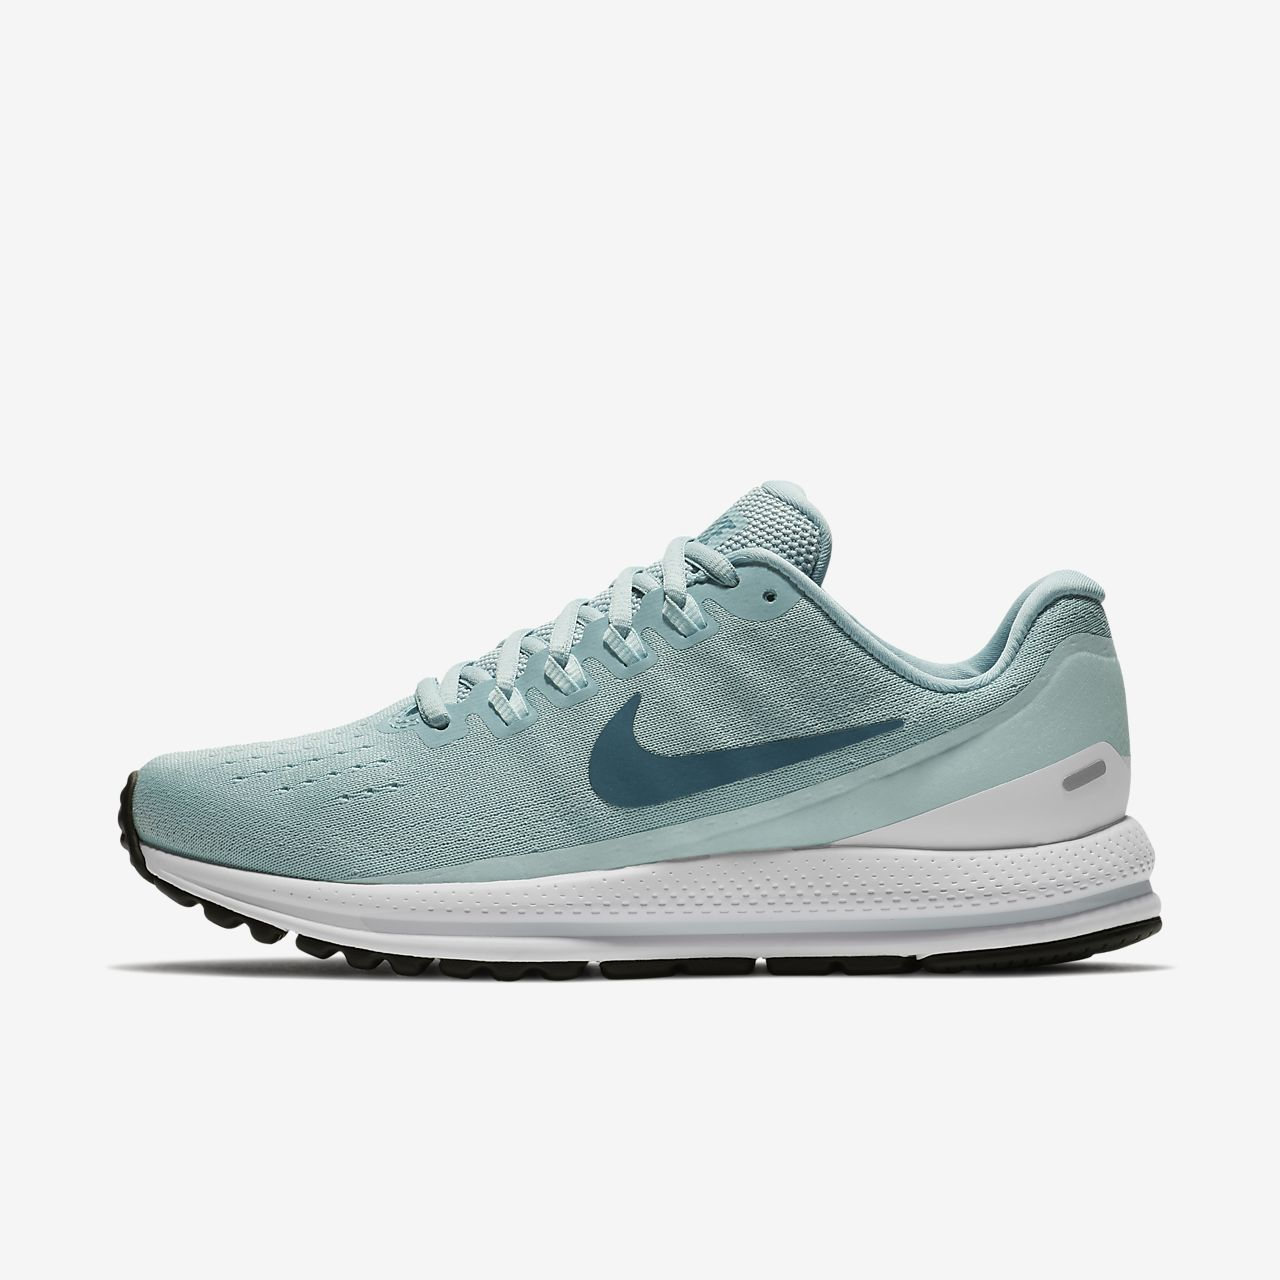 Nike Air Zoom Vomero 13 Women's Running Shoes Blue/White uF1064Y